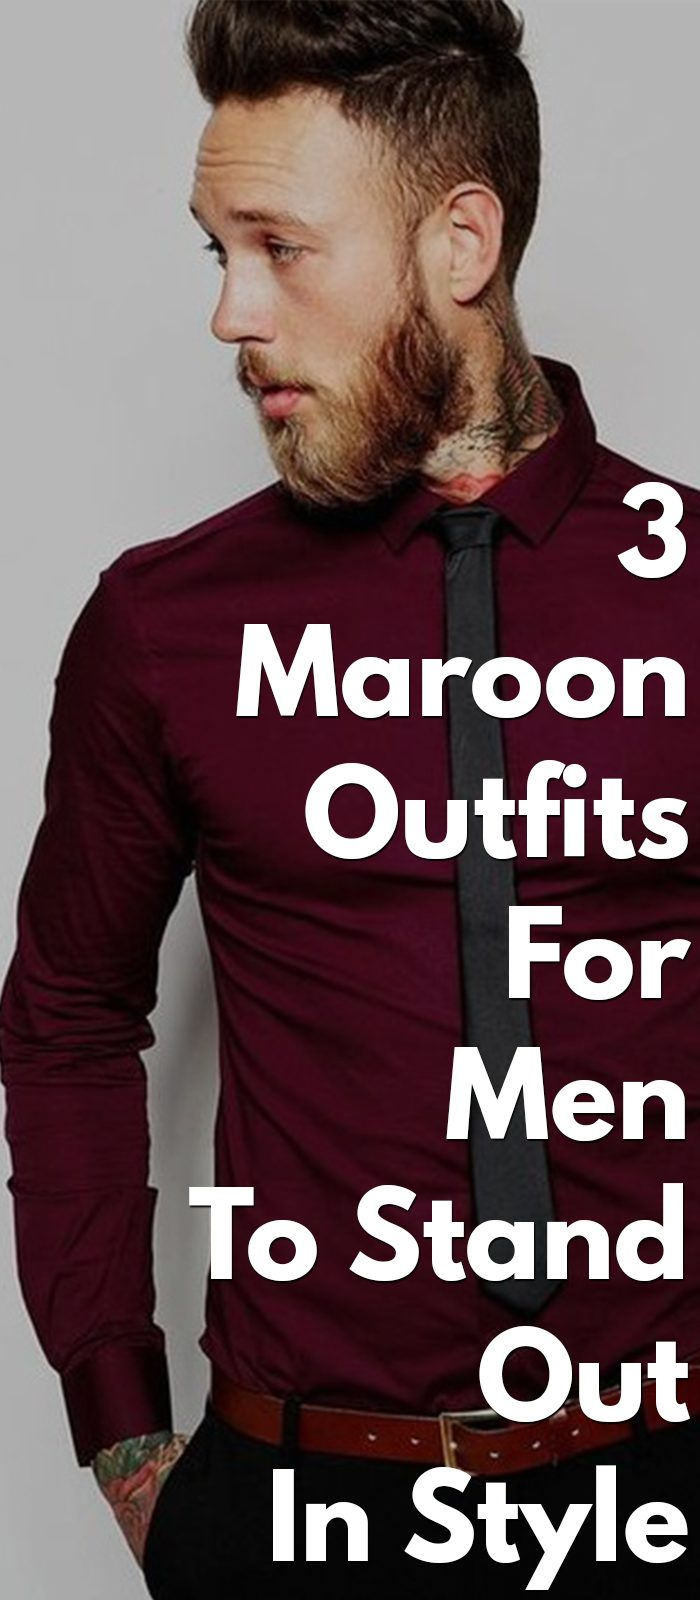 3 Maroon Outfits For Men